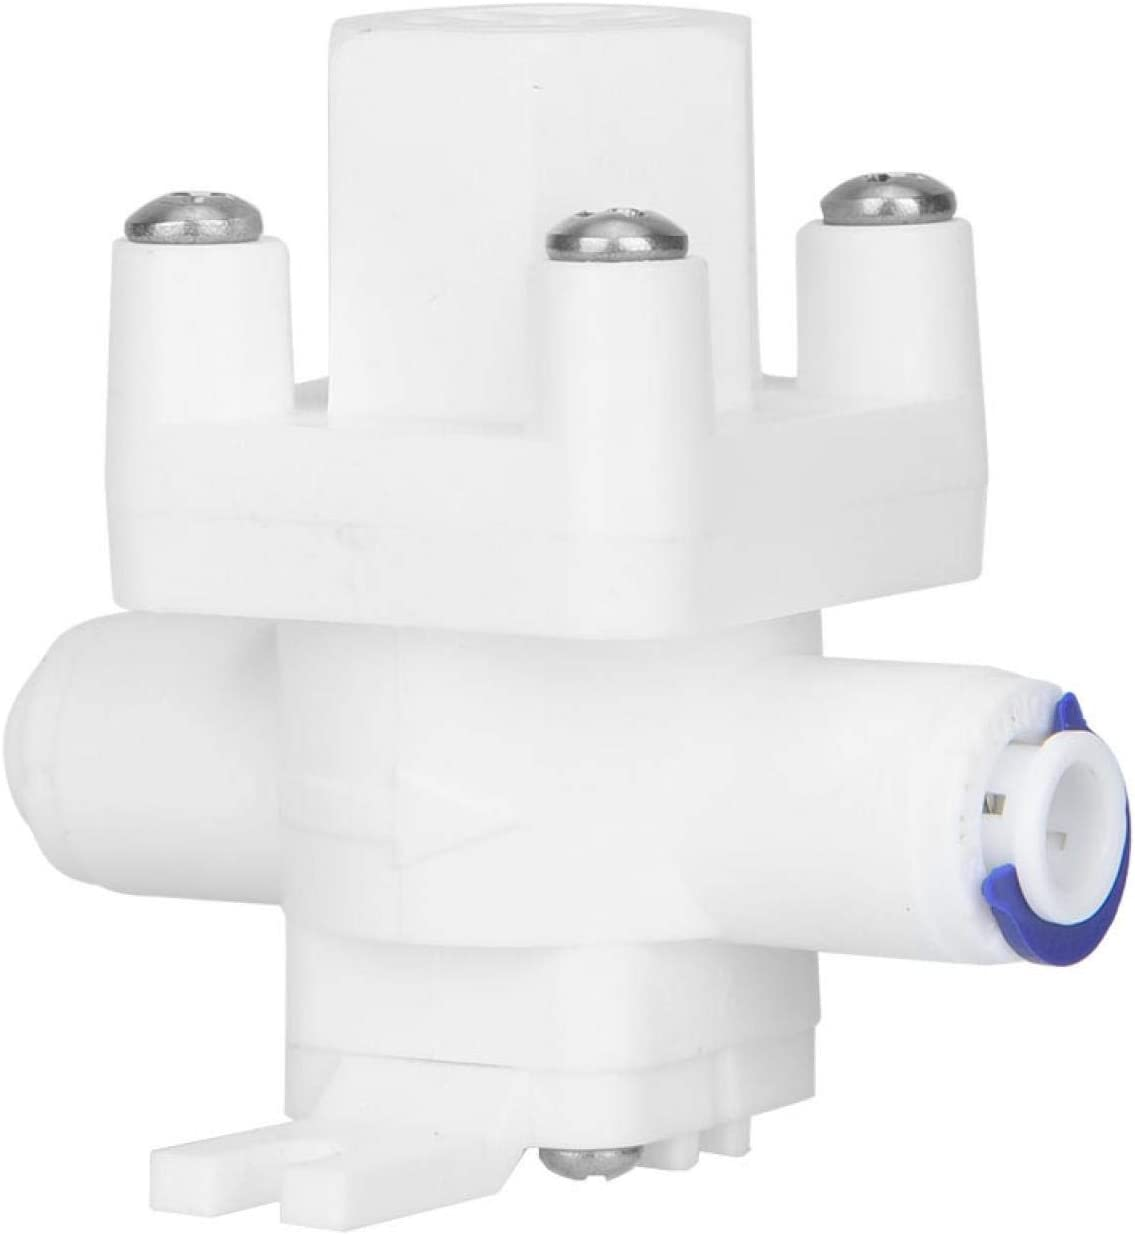 Reverse Oosis Valve Ro Reducing OFFicial store Maine Direct Drink White Outstanding